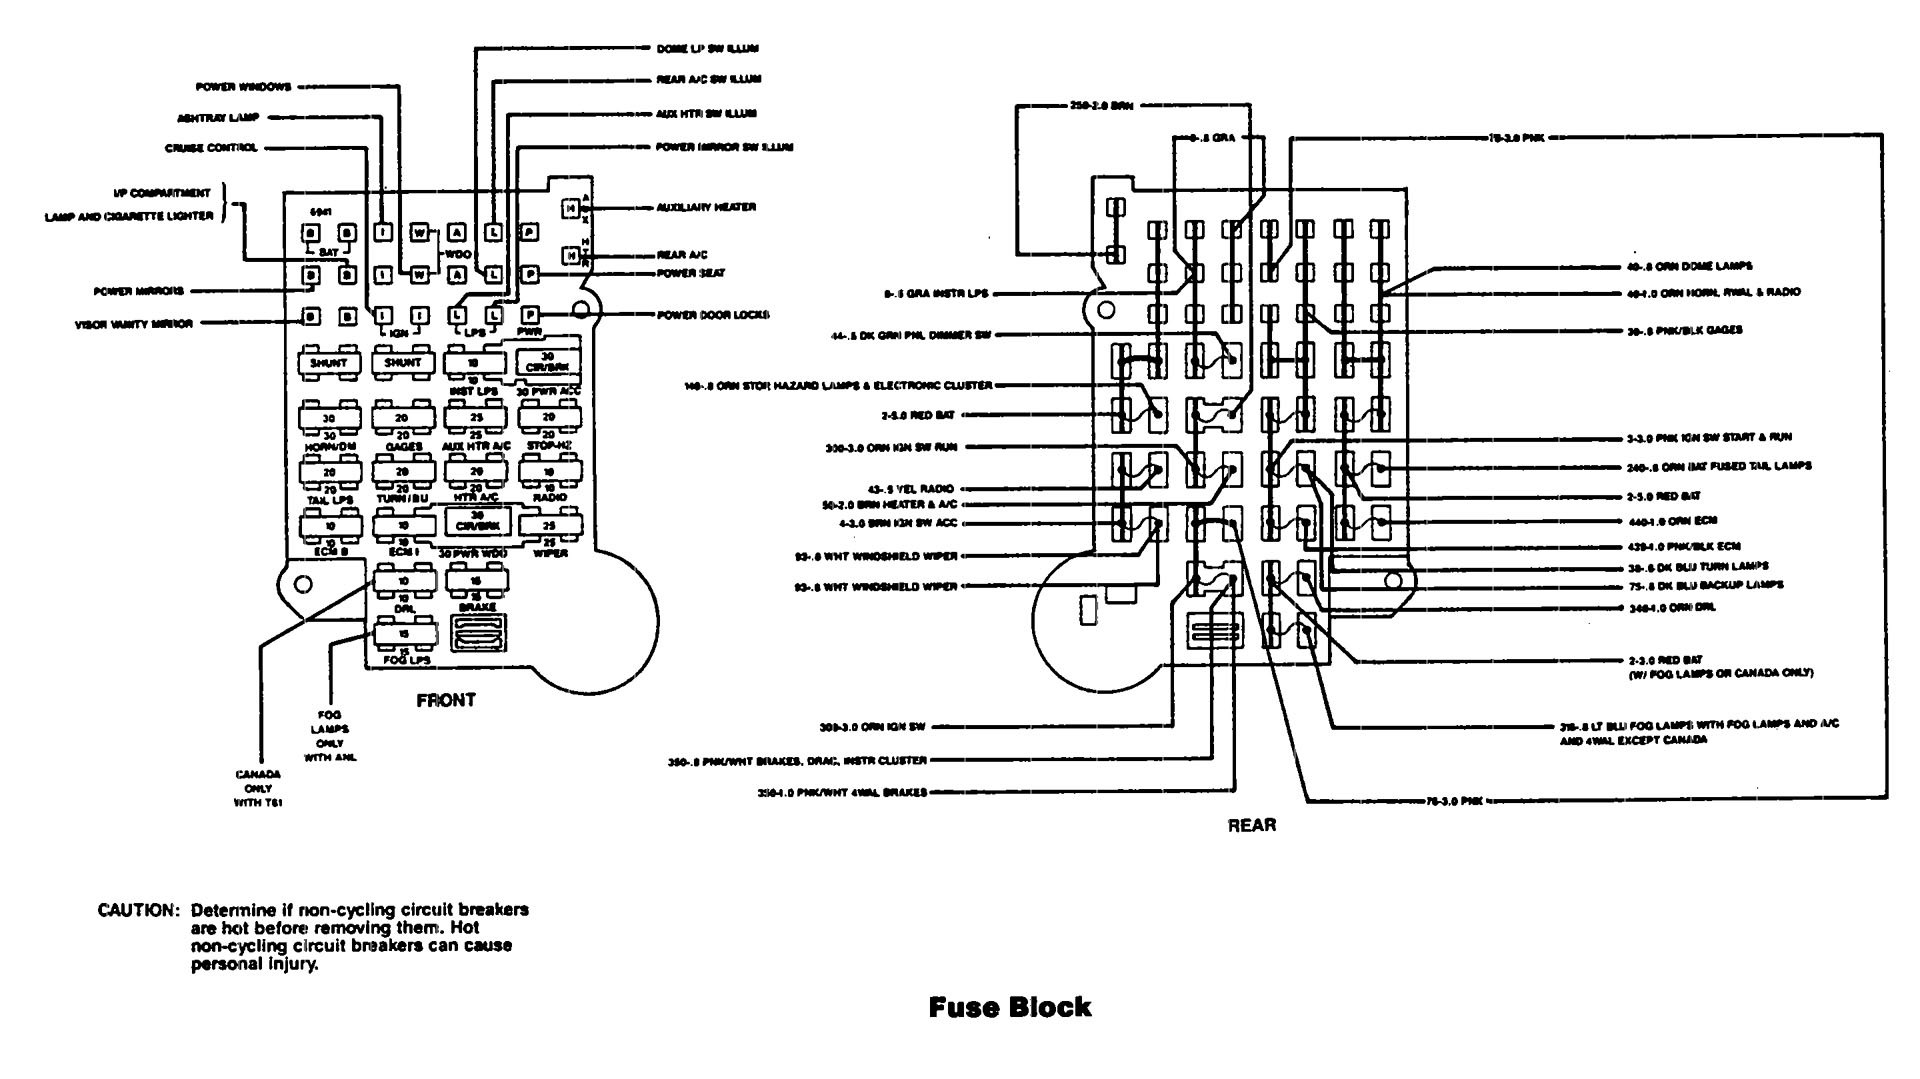 1991 S10 Fuse Box Diagram Wiring Diagrams 91 Gm 1990 Chevy Blazer Engine Imageresizertool Com 97 Pickup